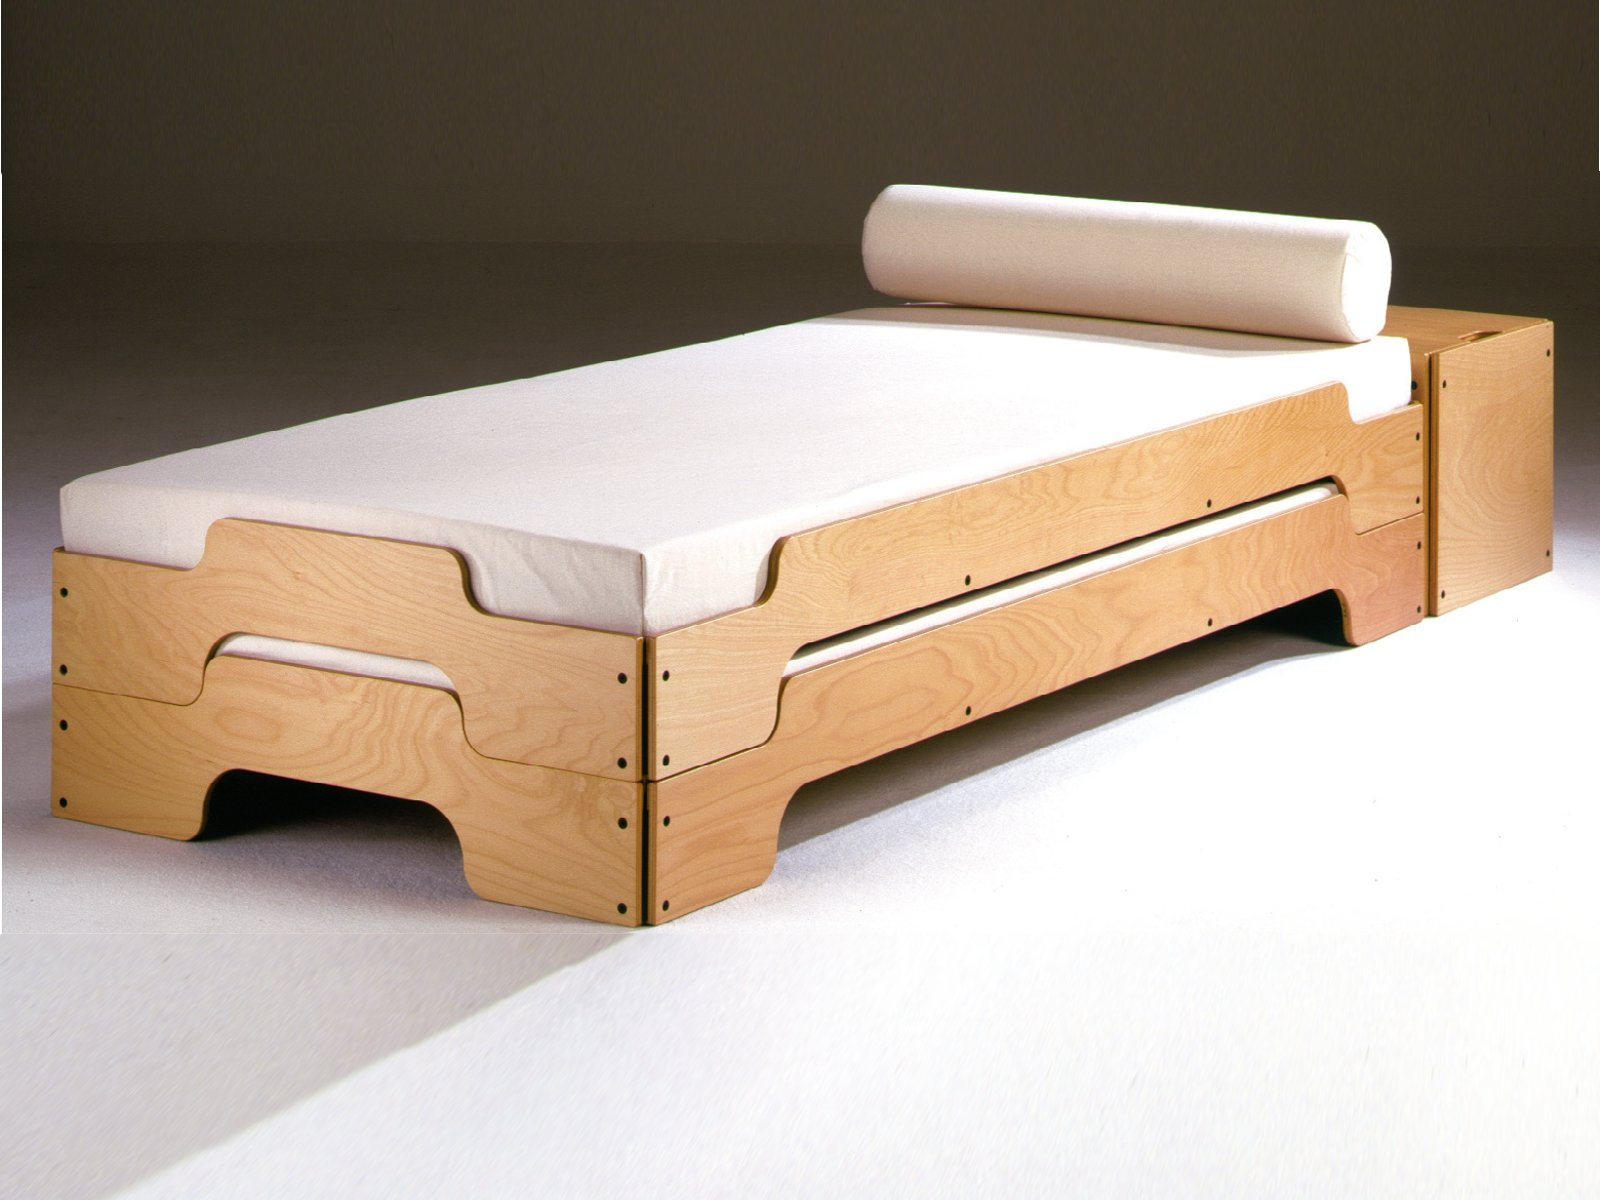 Stackable single bed stackable bed by m ller m belwerkst tten design rolf heide - Images of bed design ...